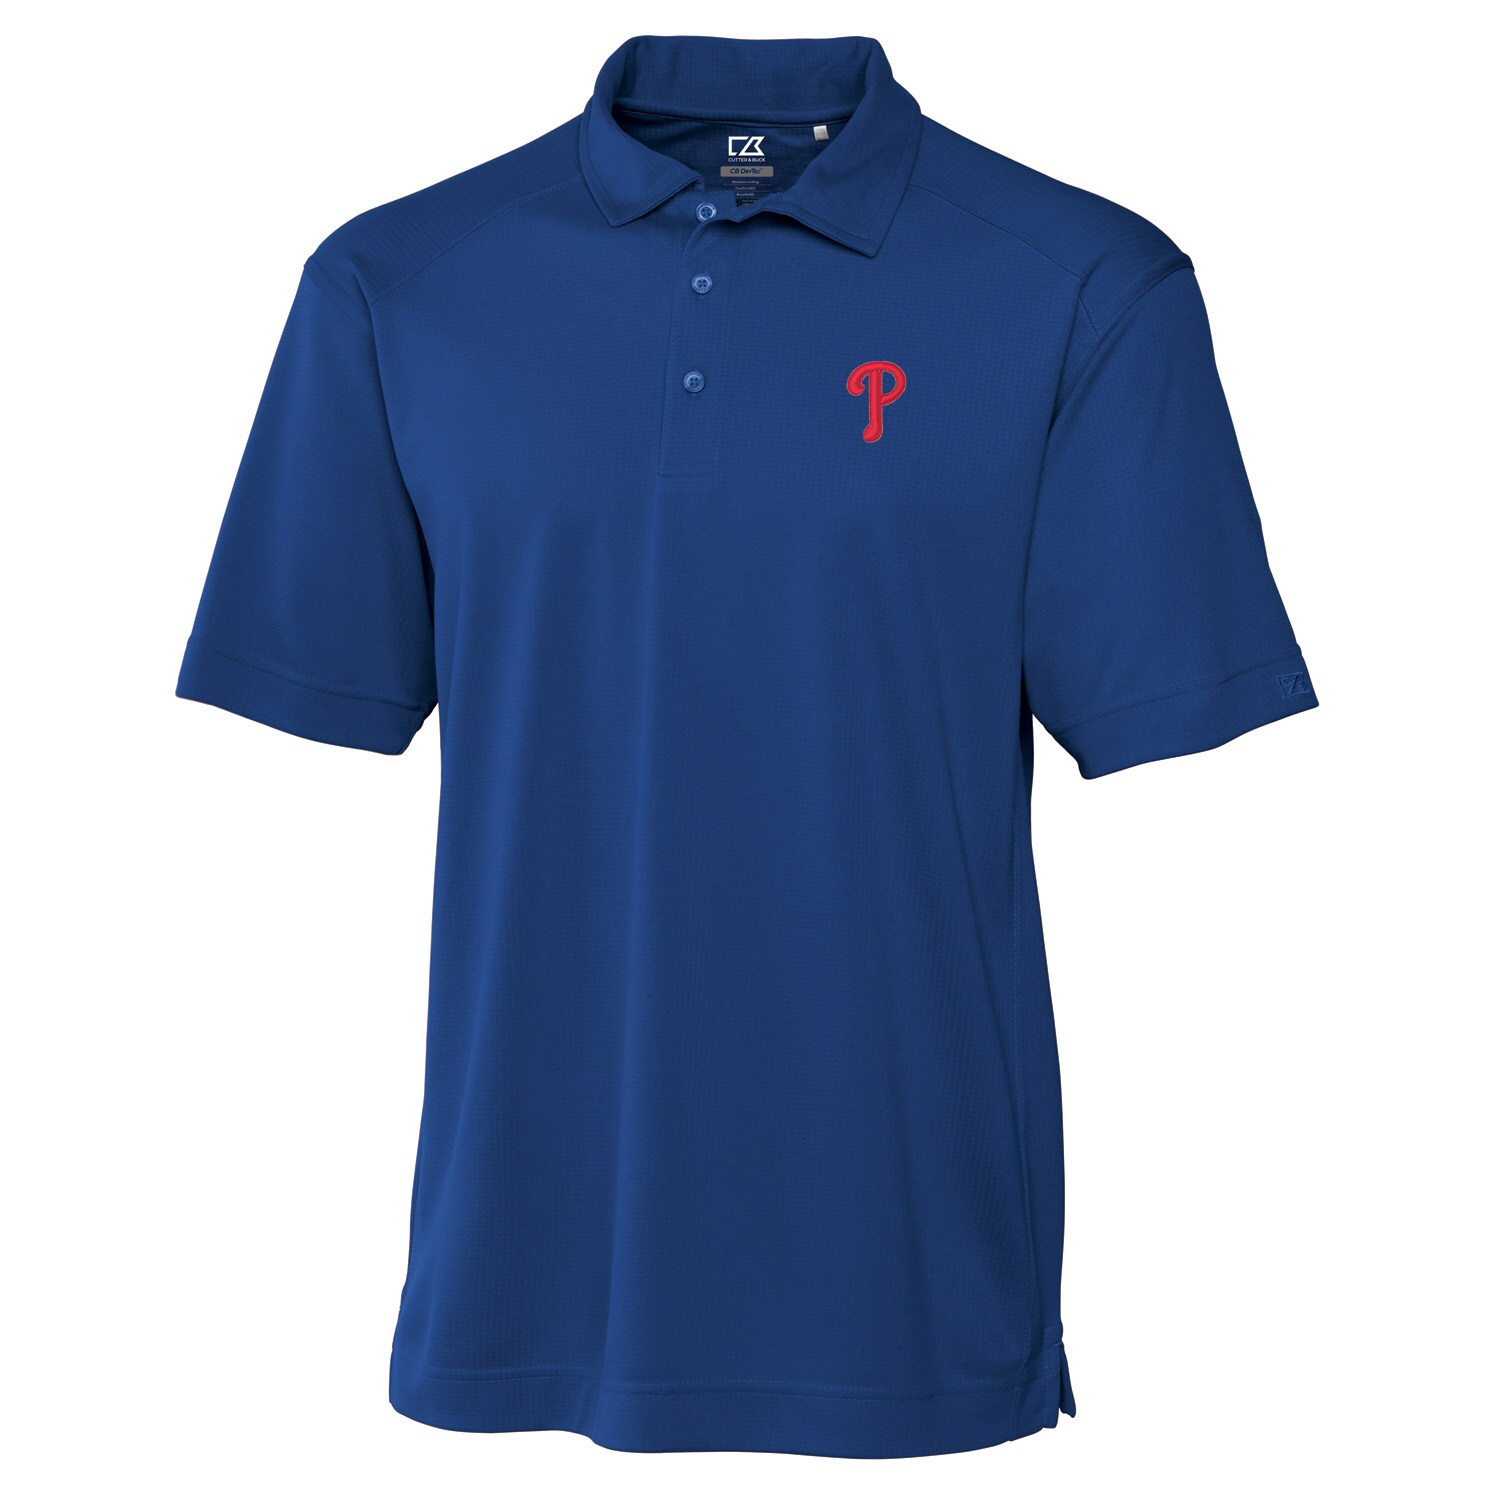 Philadelphia Phillies Cutter & Buck Big & Tall DryTec Genre Polo - Royal